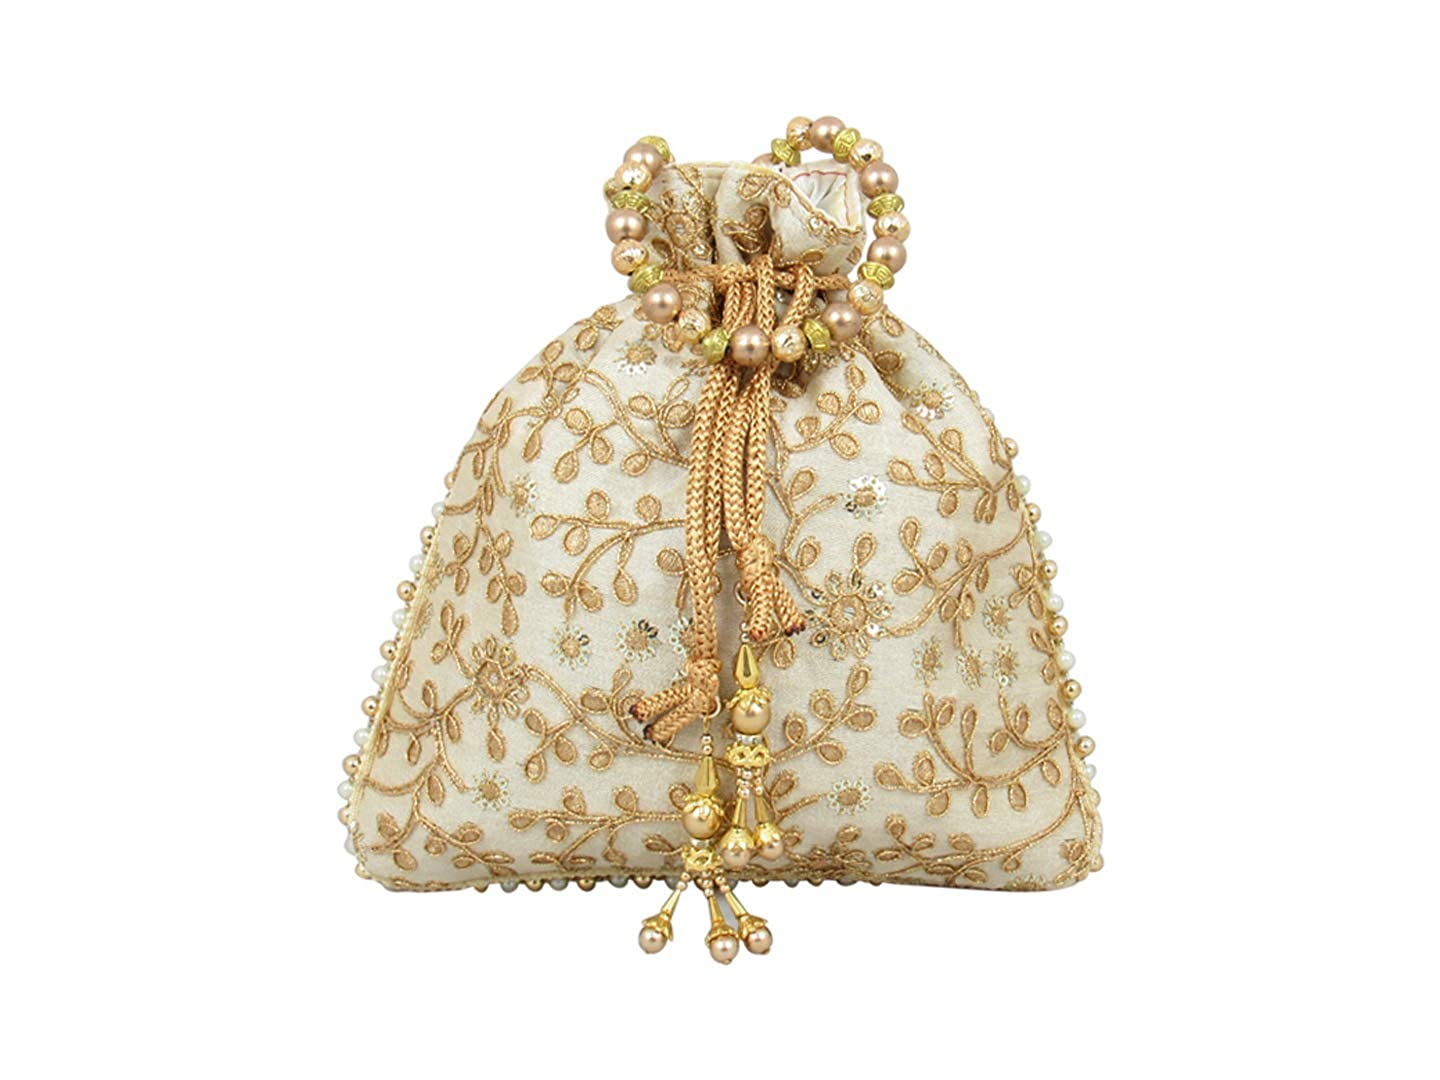 Bridal Clutch for Return Gift,Indian Bridal Purse for Party,Traditional Party Favor Bags,Potli Pouch for Wedding GoldGiftIdeas Gold Embroidered Bridal Potli Bags Set of 5